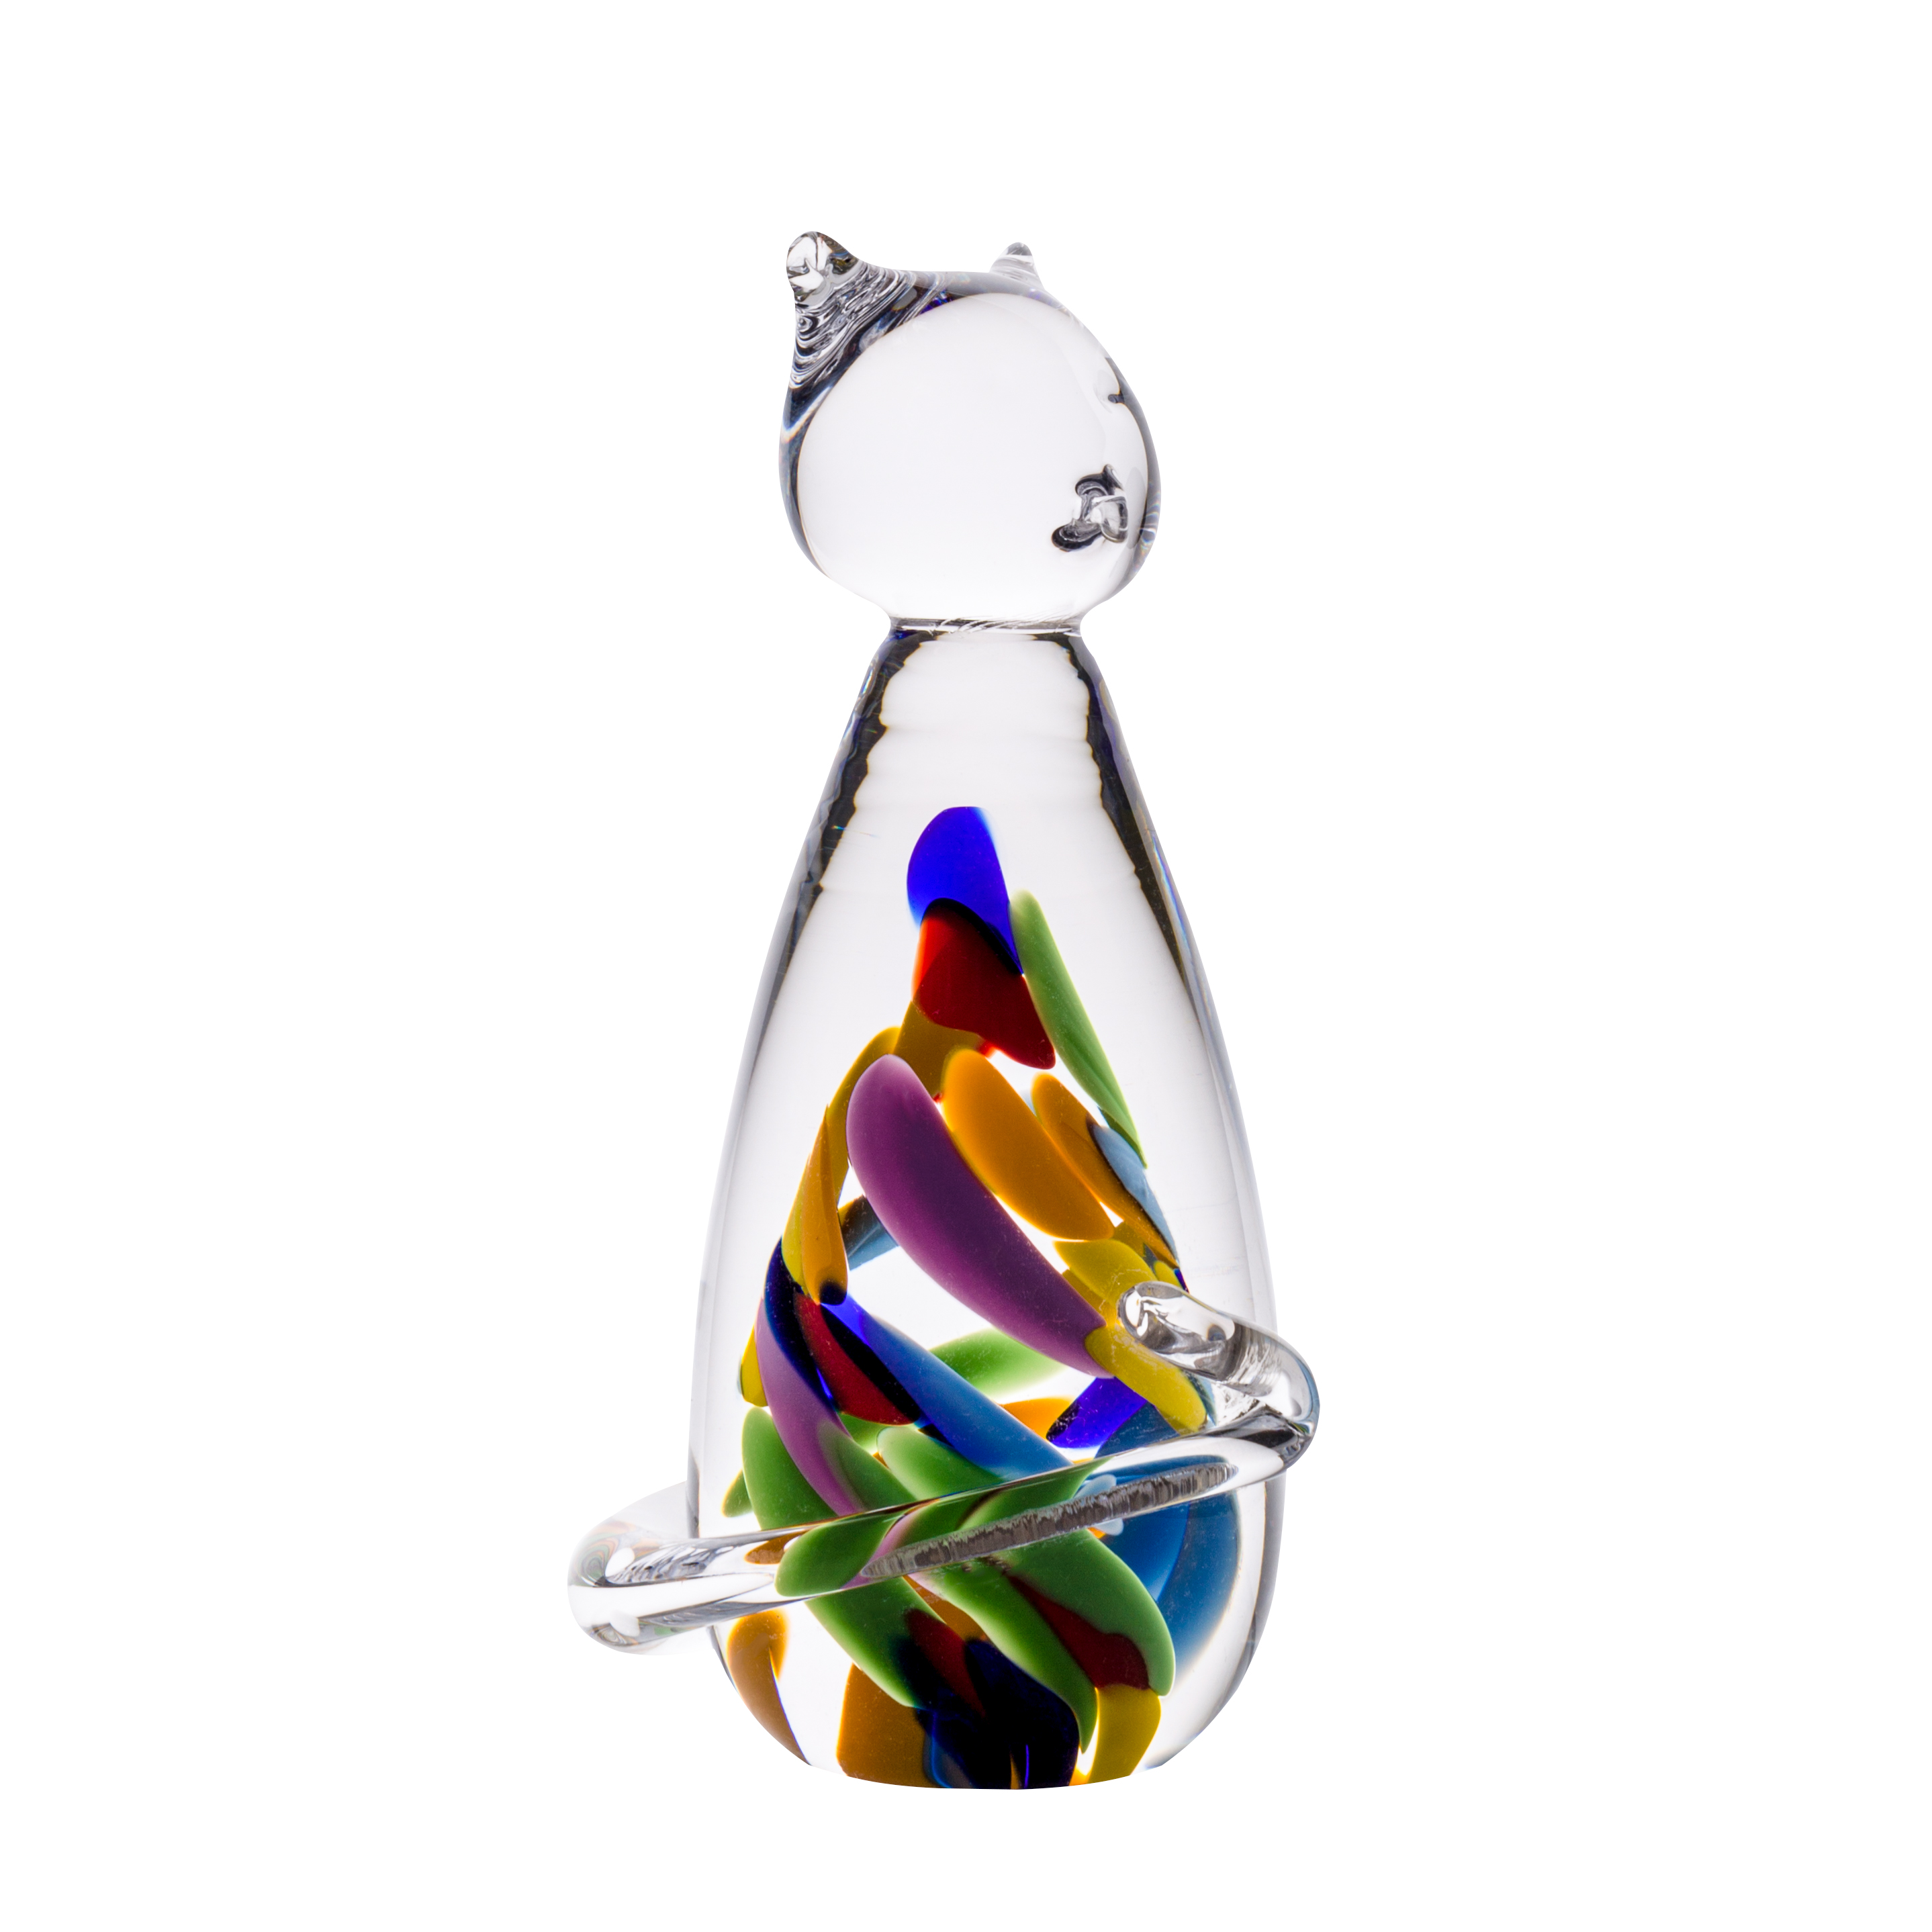 Wildflower Cat - Crystal 100% Hand Cut - The Irish Handmade Glass Company